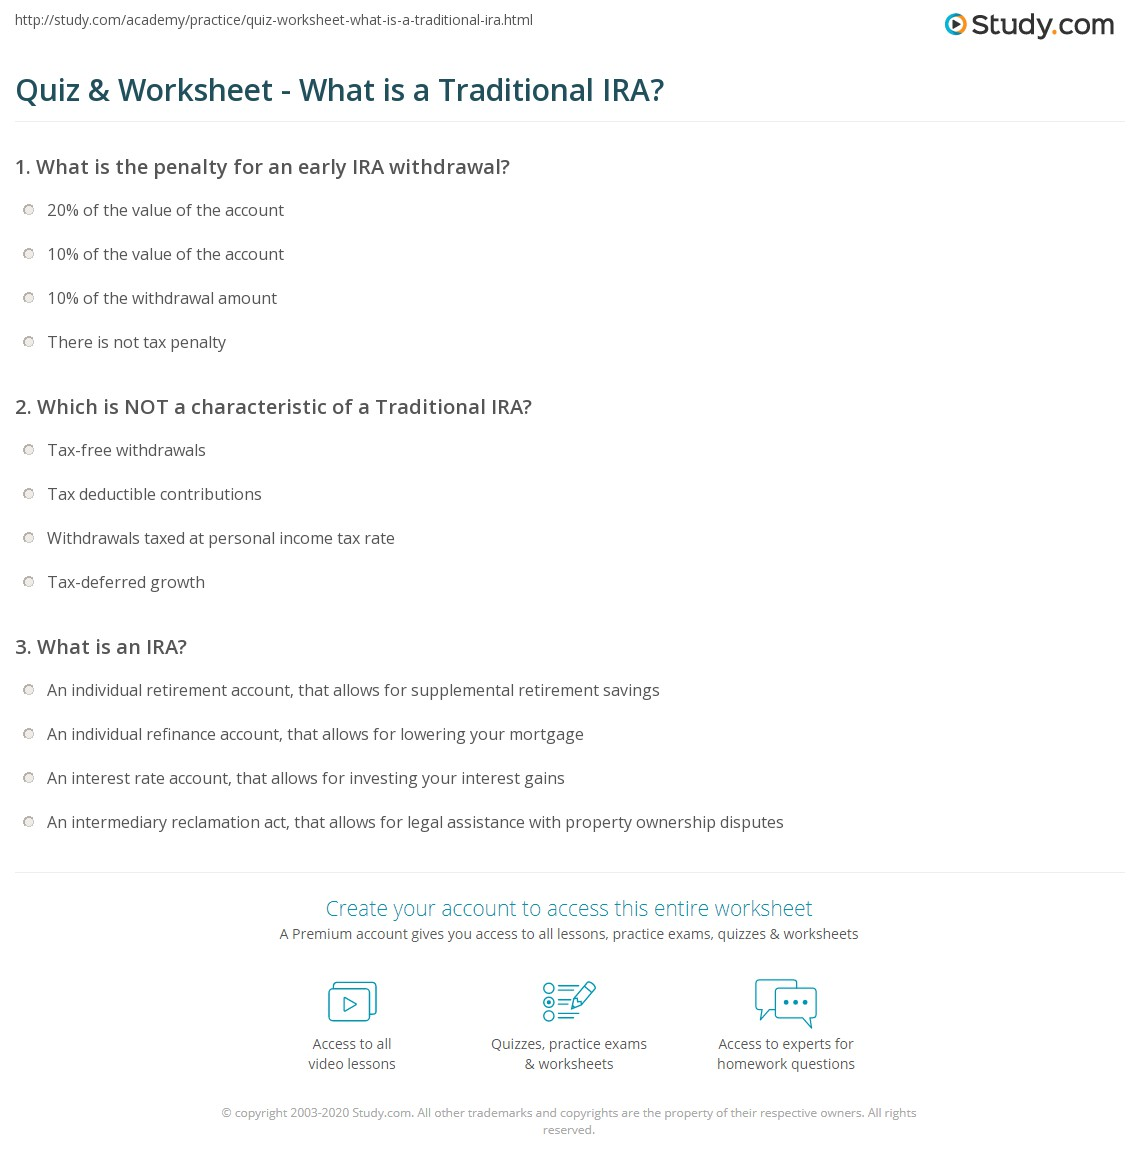 quiz & worksheet - what is a traditional ira? | study